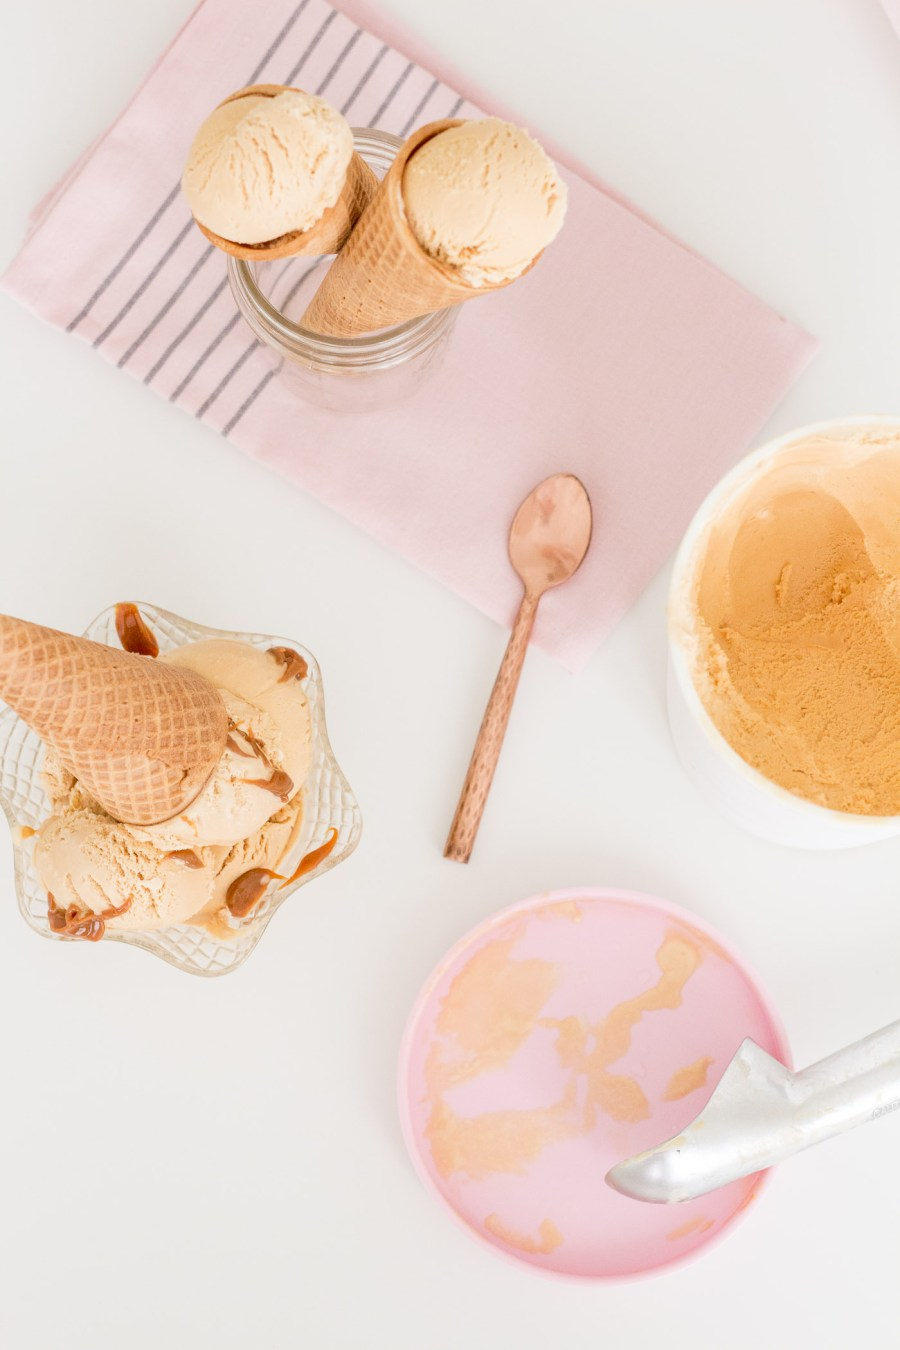 5-Ingredient Dulce de Leche Ice Cream, cinco de mayo dessert recipe, Treats and Trends